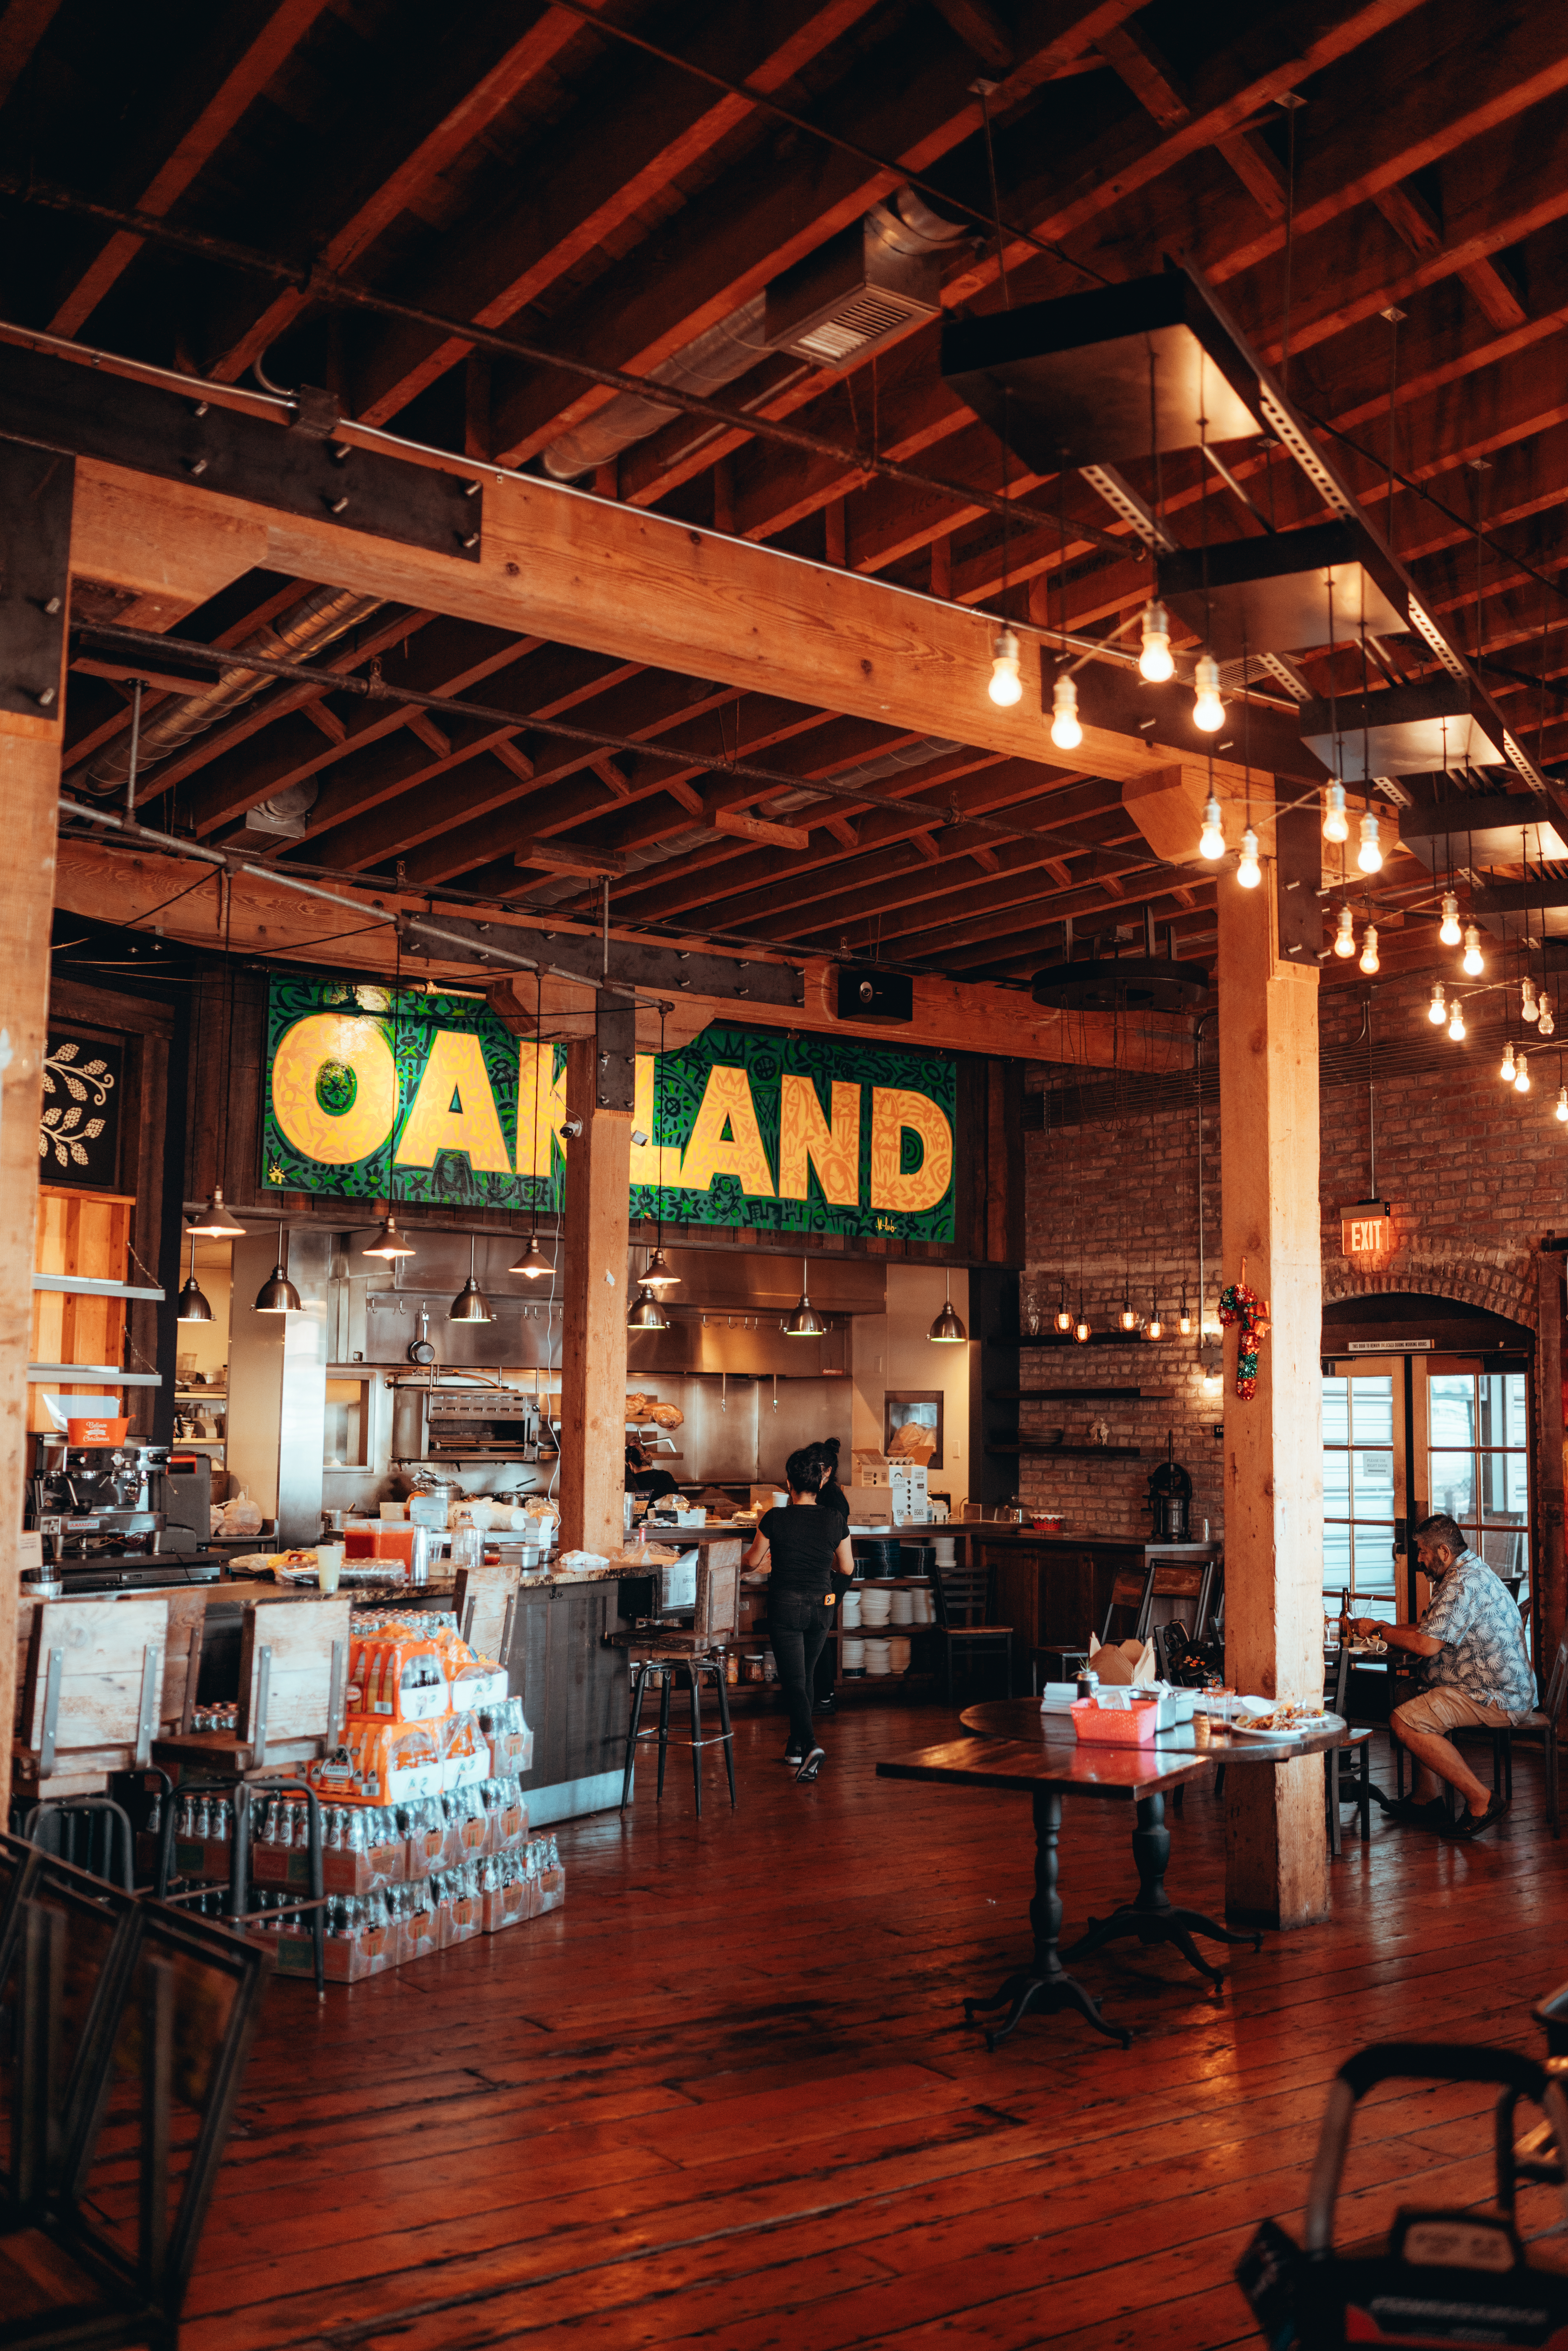 """A view of the front counter of La Santa Torta's brick-and-mortar restaurant, including a green-and-yellow sign reading """"Oakland."""""""